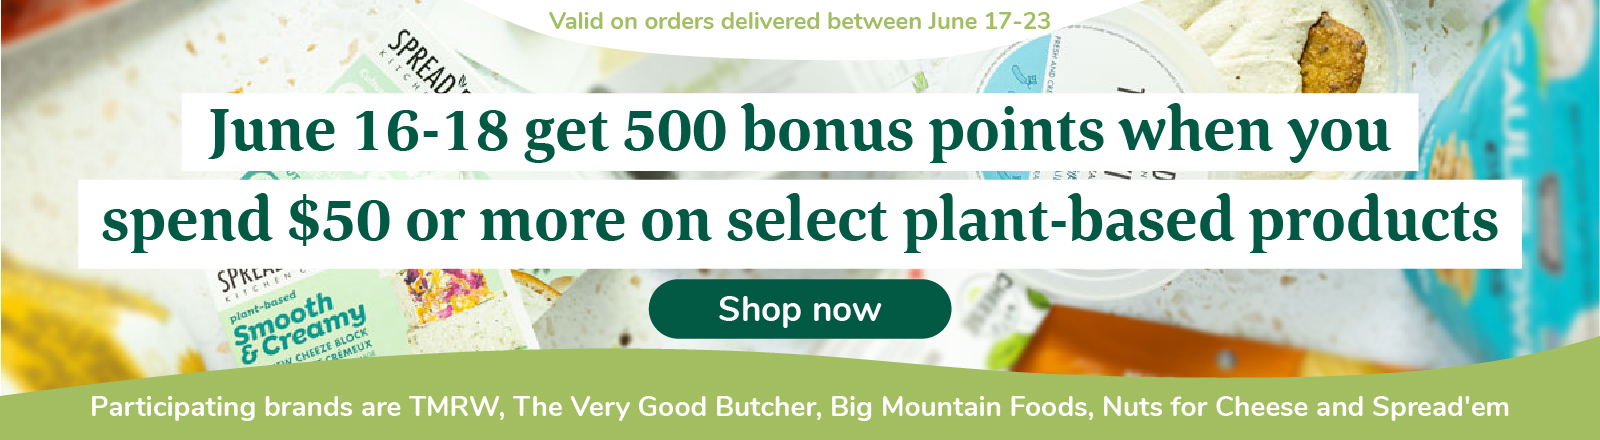 bonus points when you buy select plant-based products